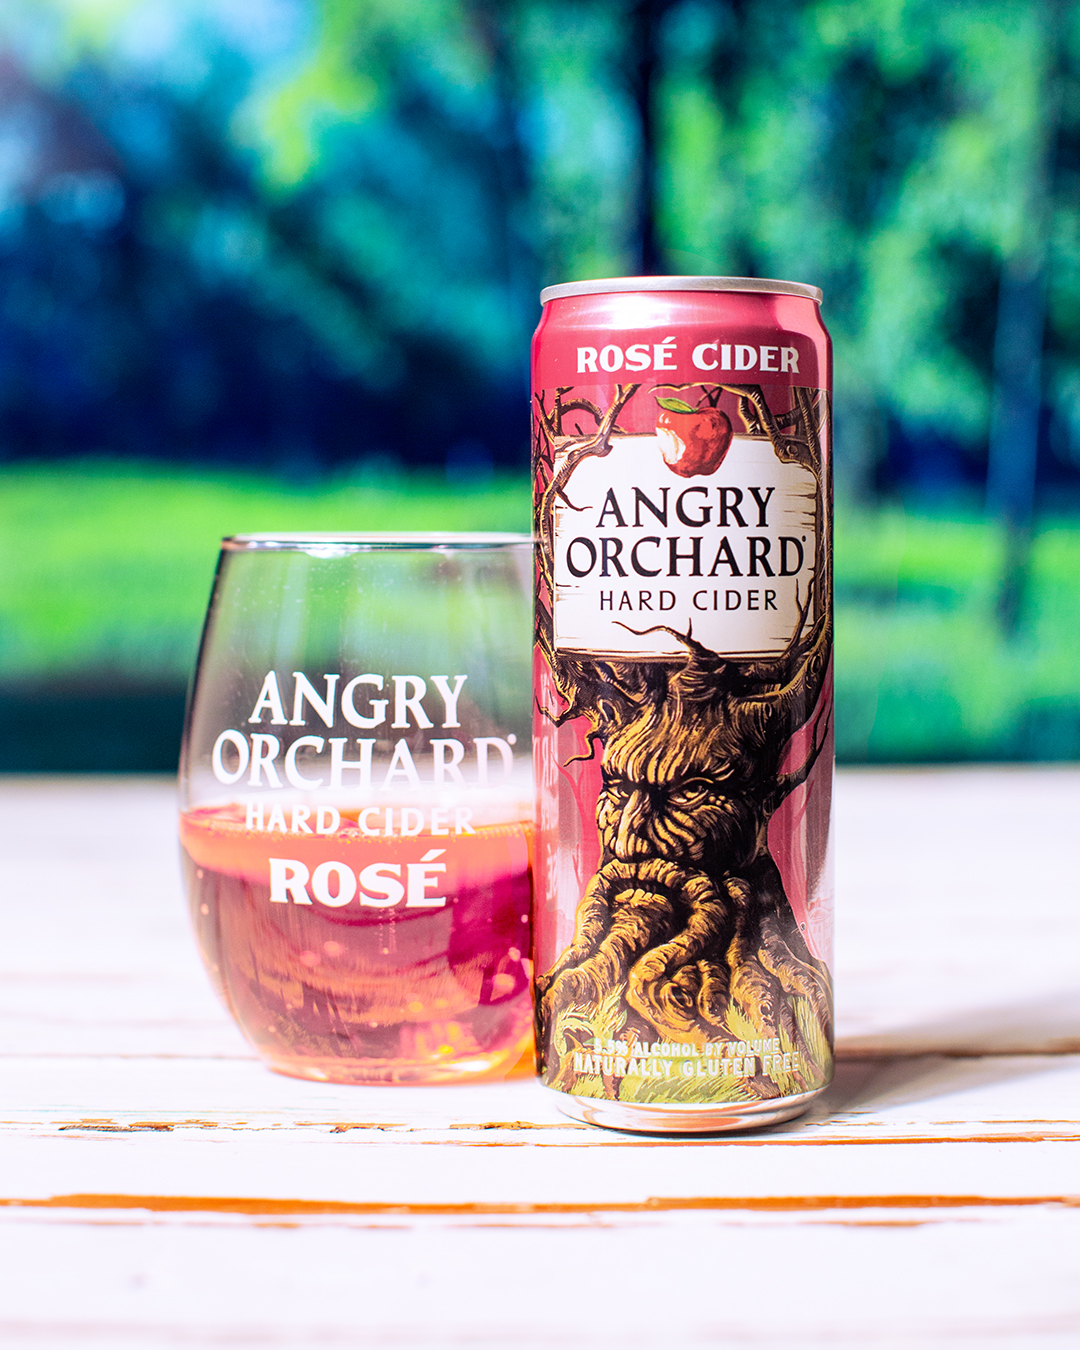 AngryOrchard Rosé is in the rare red-fleshed apples that are used as part of the blend, called Amour Rouge